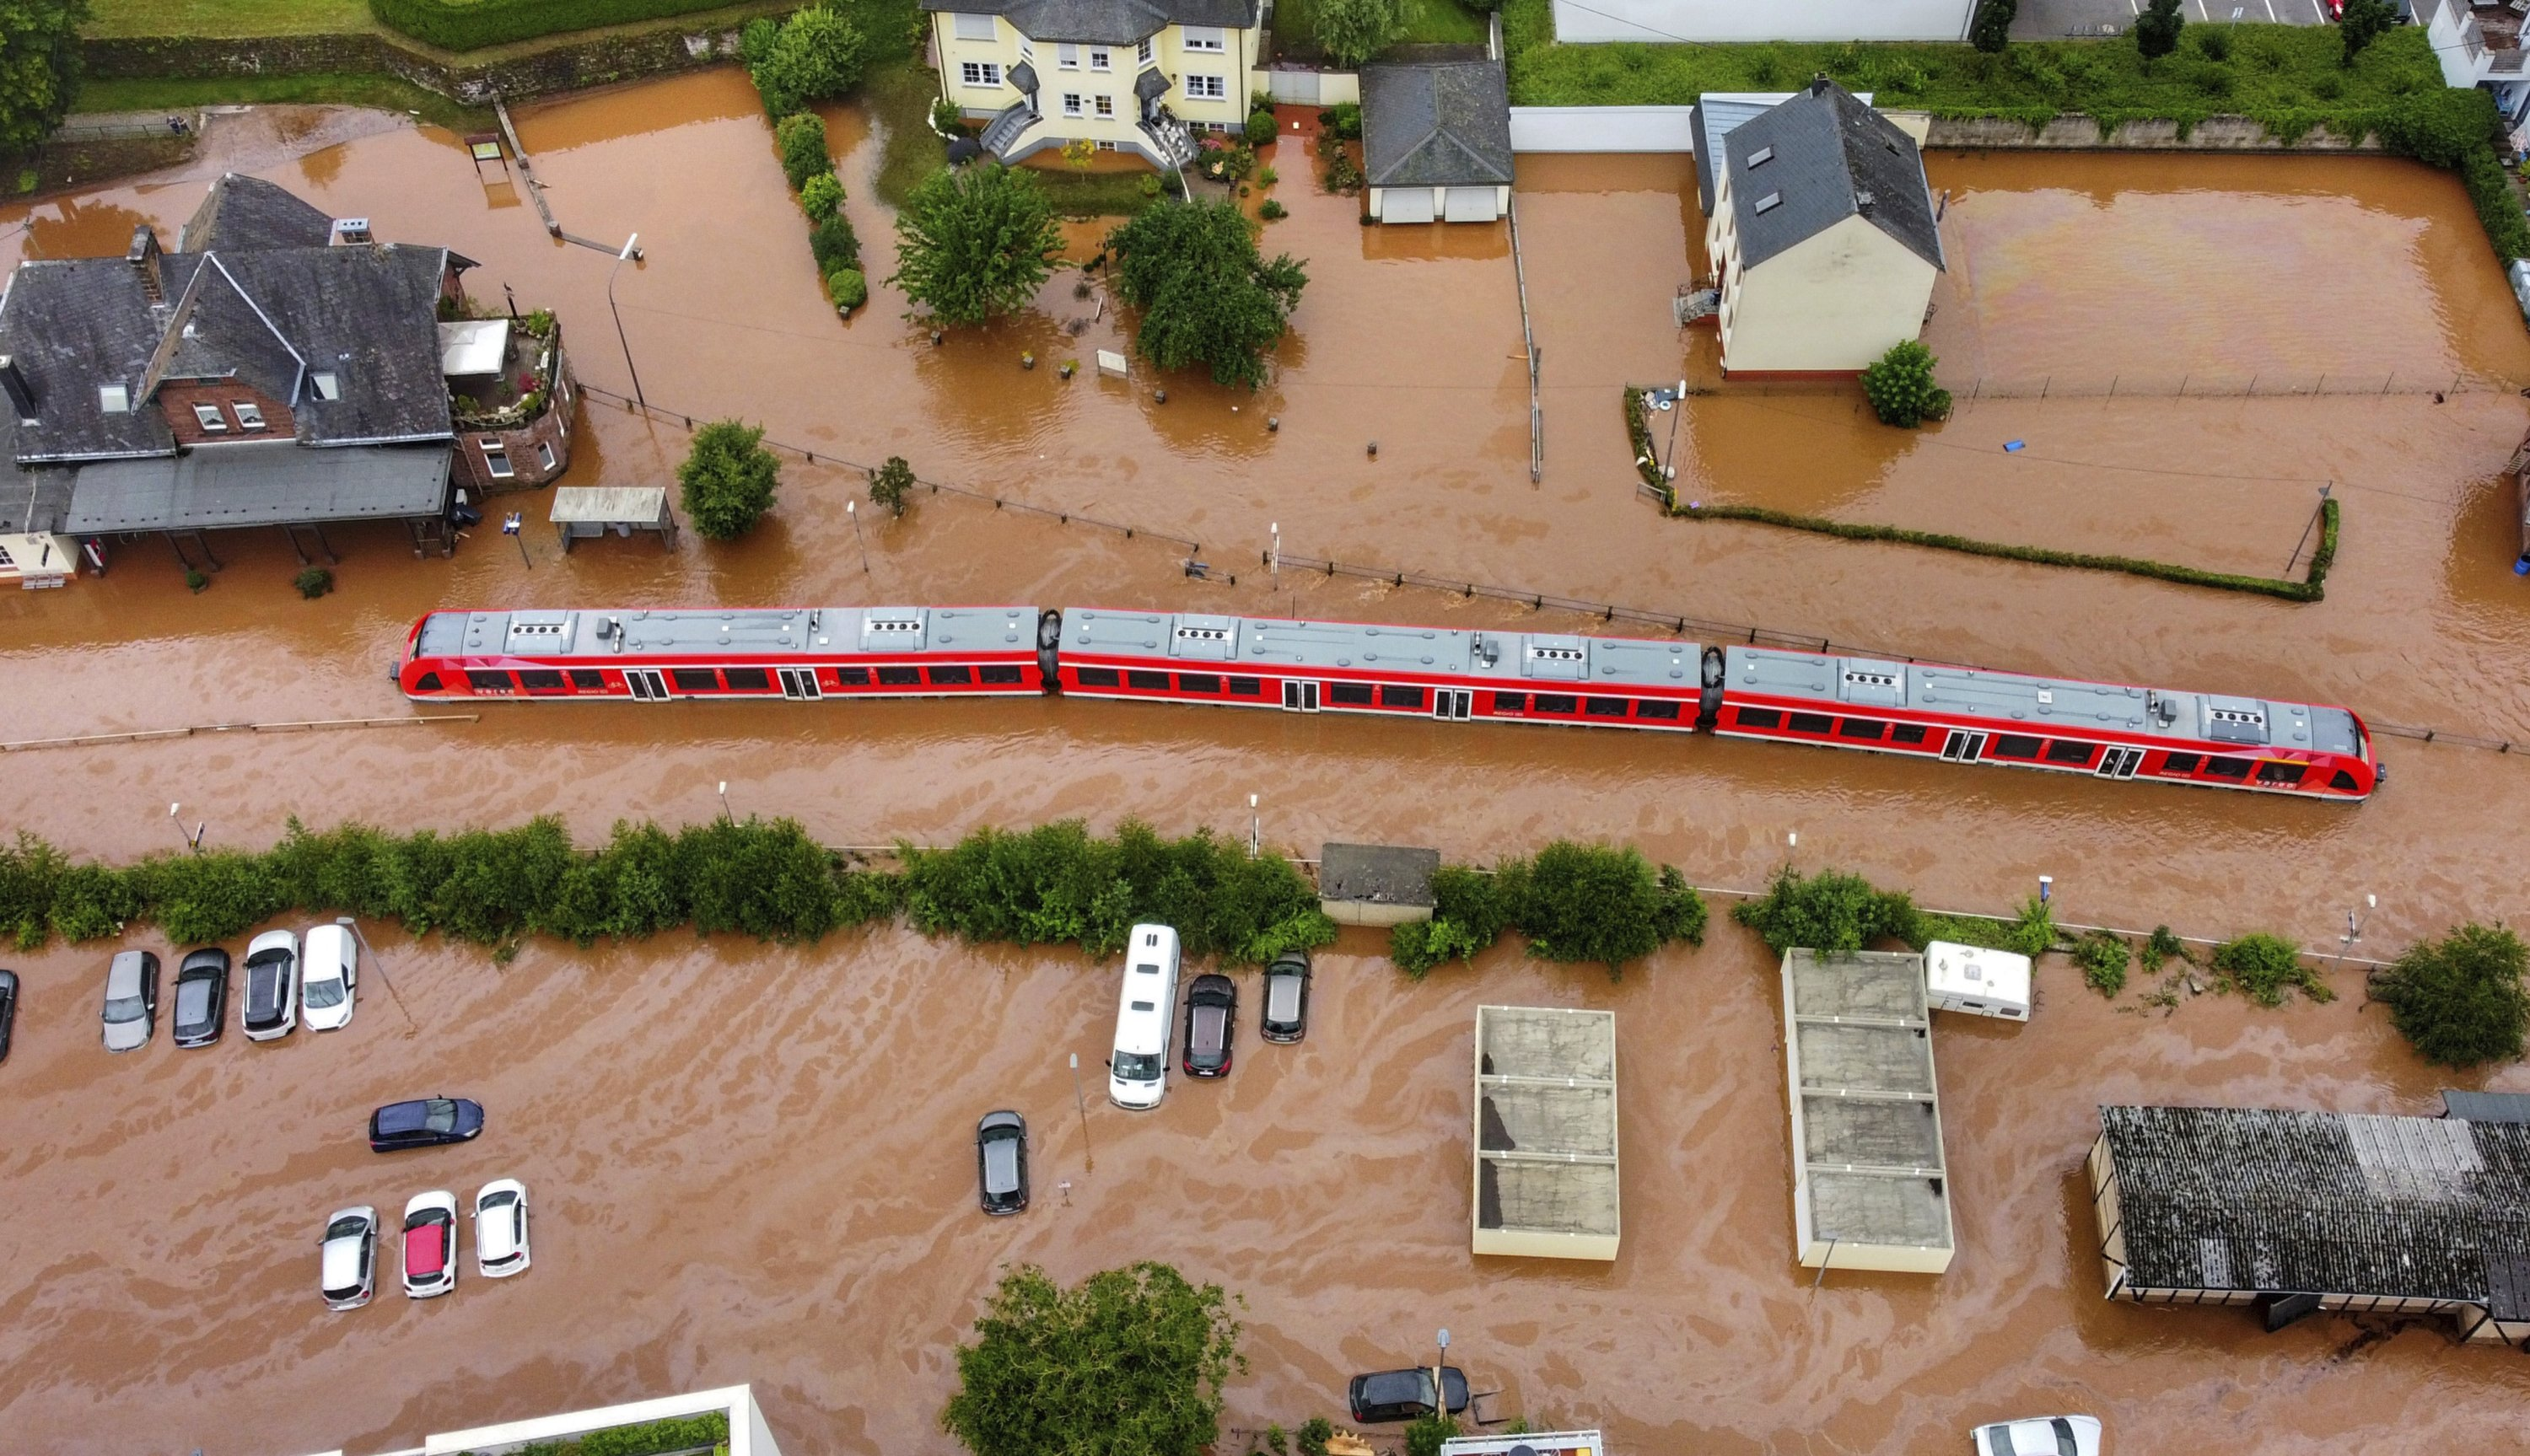 A regional train in the floodwaters at the local station in Kordel, after the town was flooded by the rising waters of the Kyll river, Germany, July 15, 2021. (AP Photo)